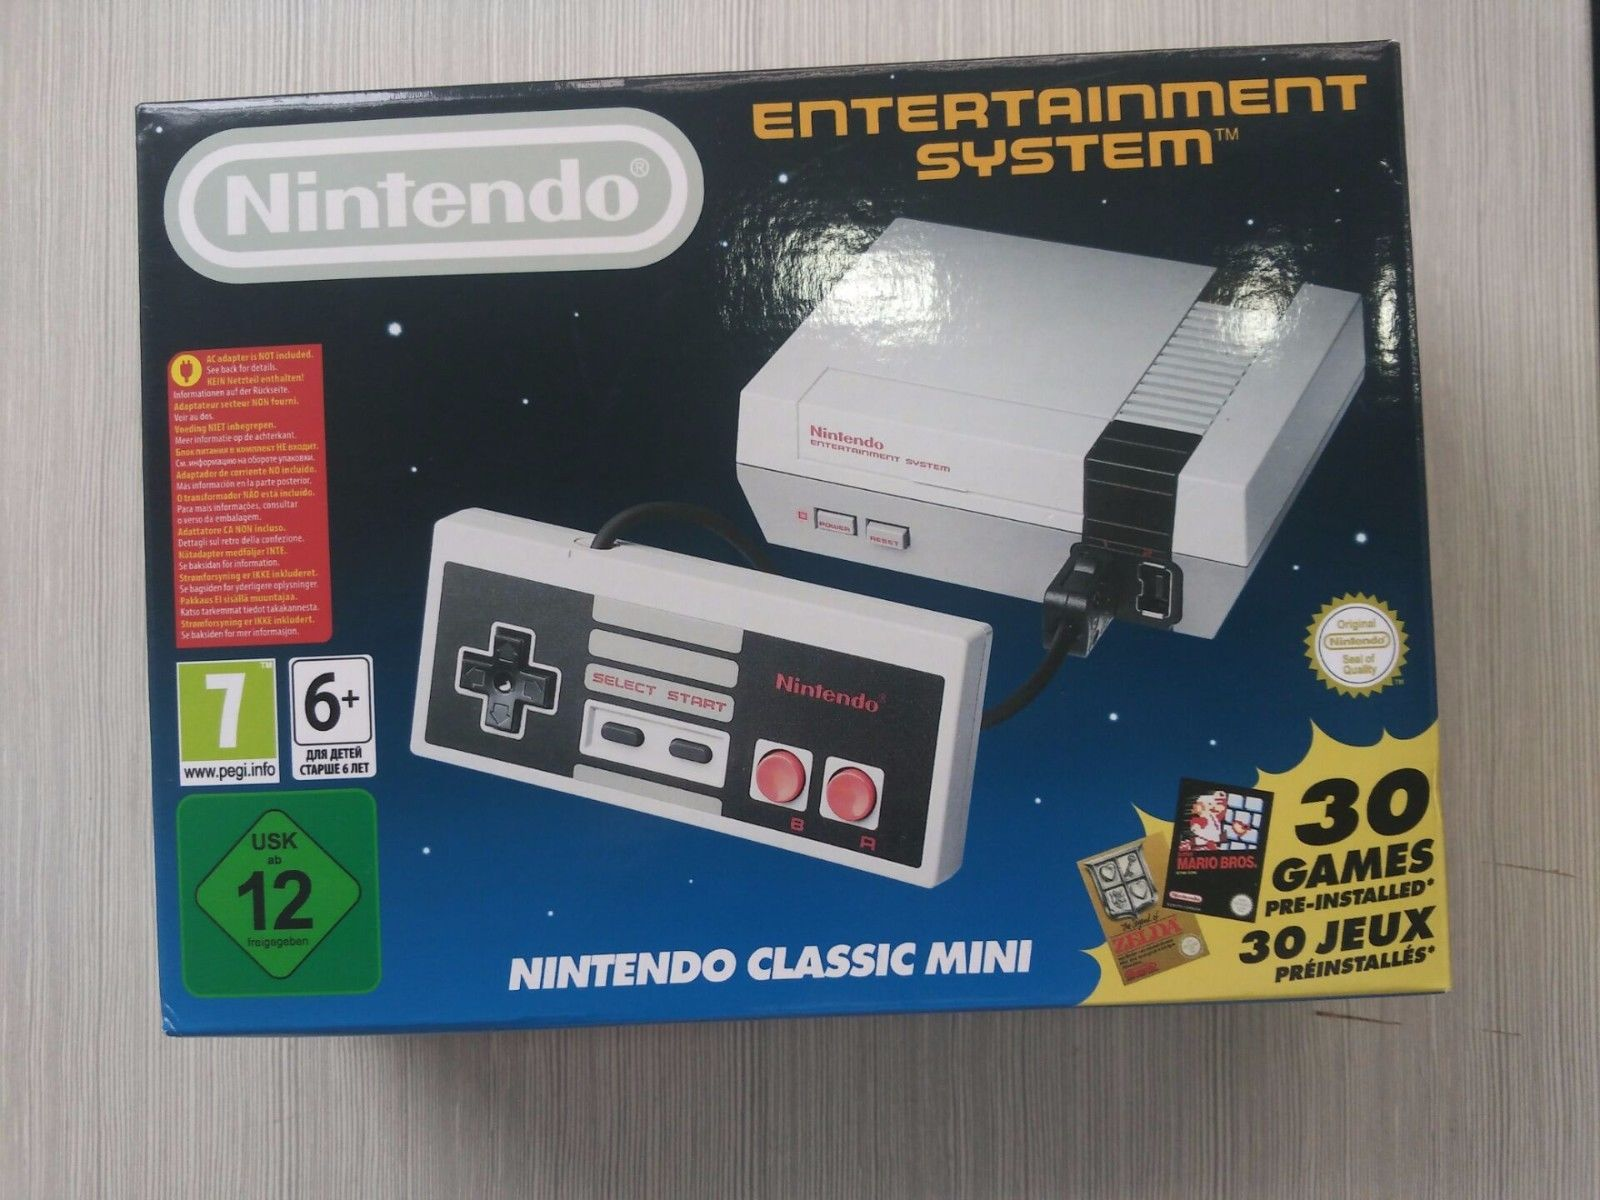 Fake NES Mini console are appearing online